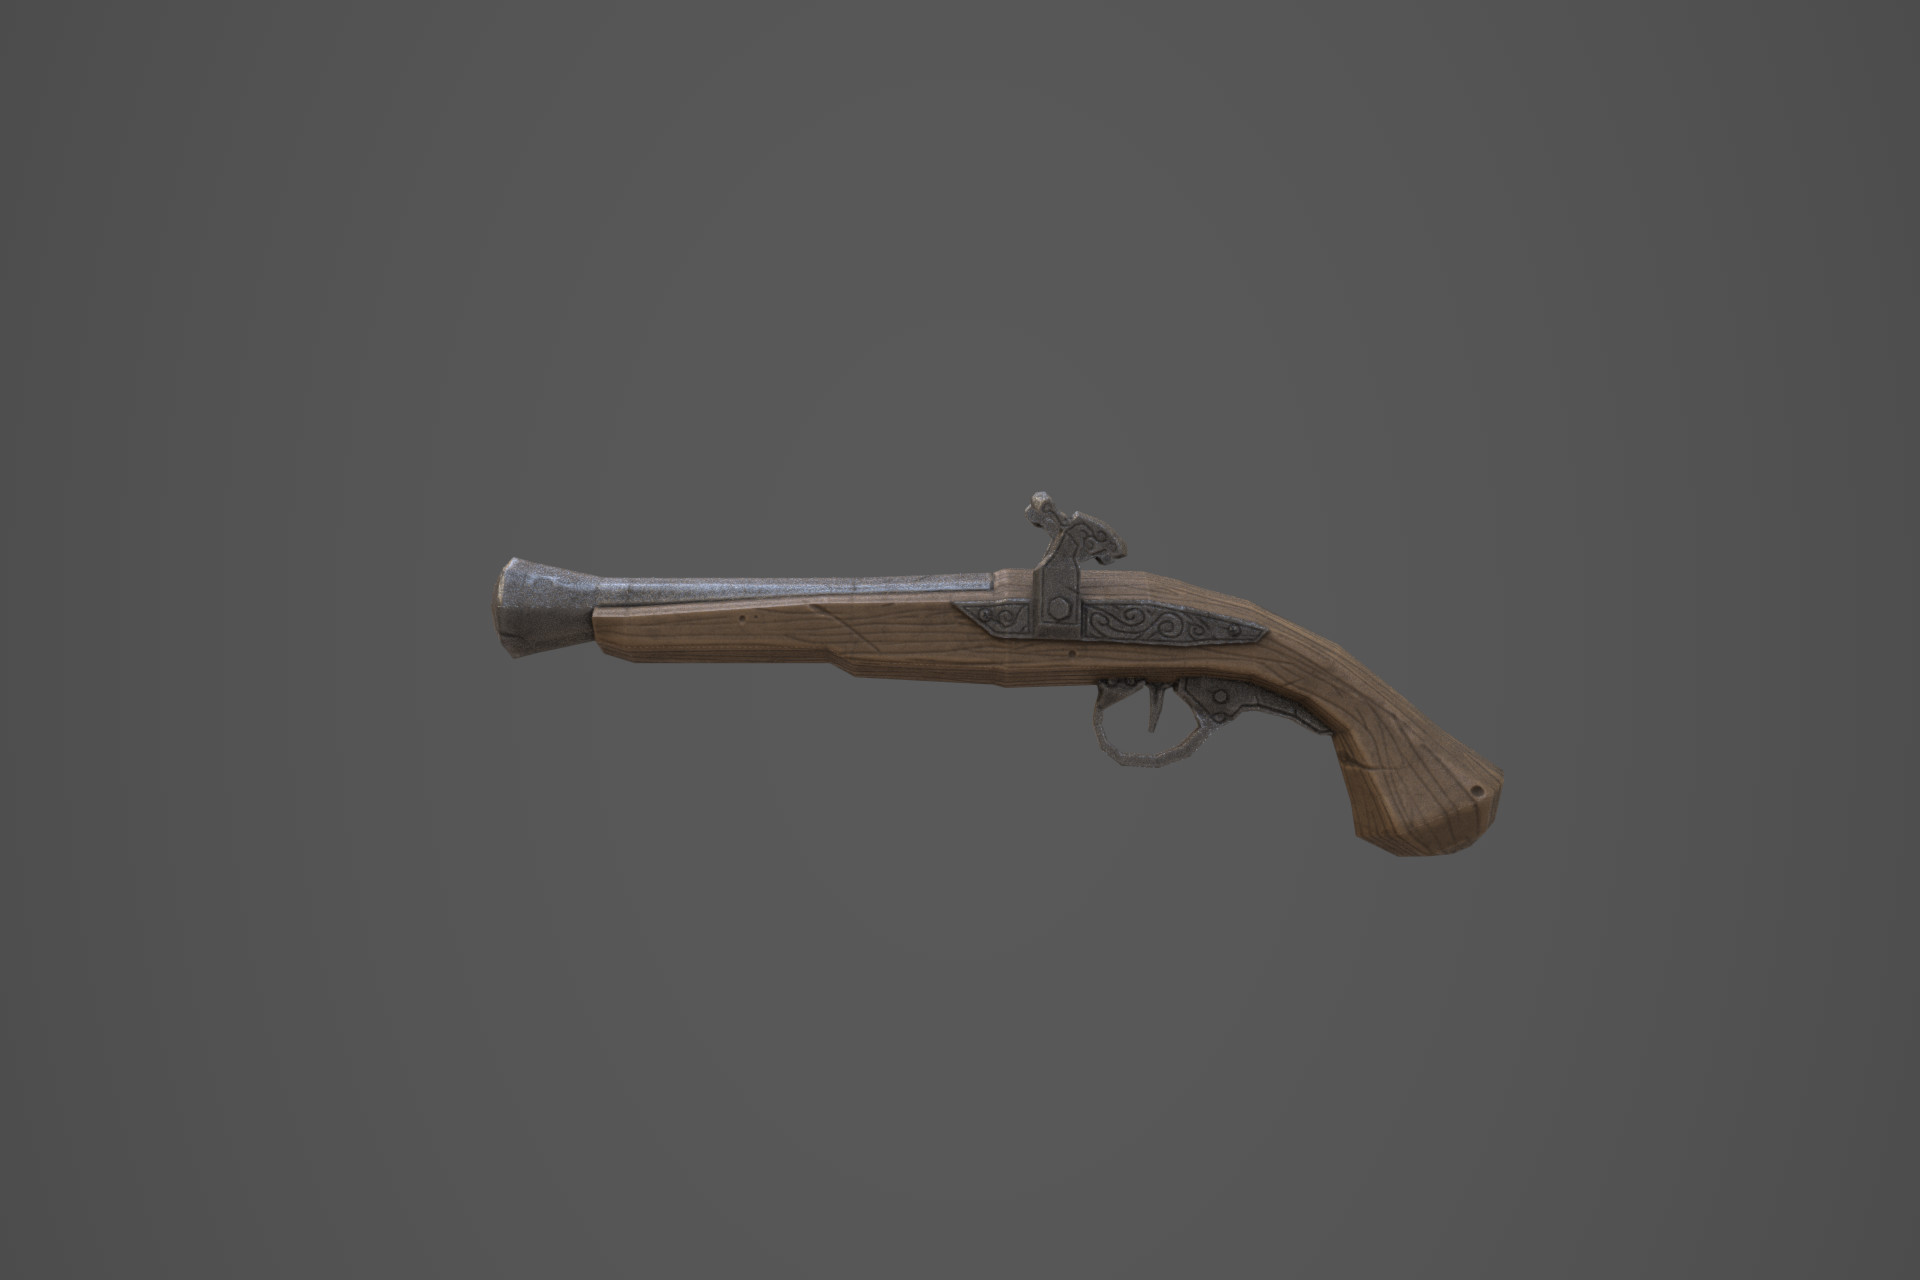 Hand Painted - Stylized Flintlock